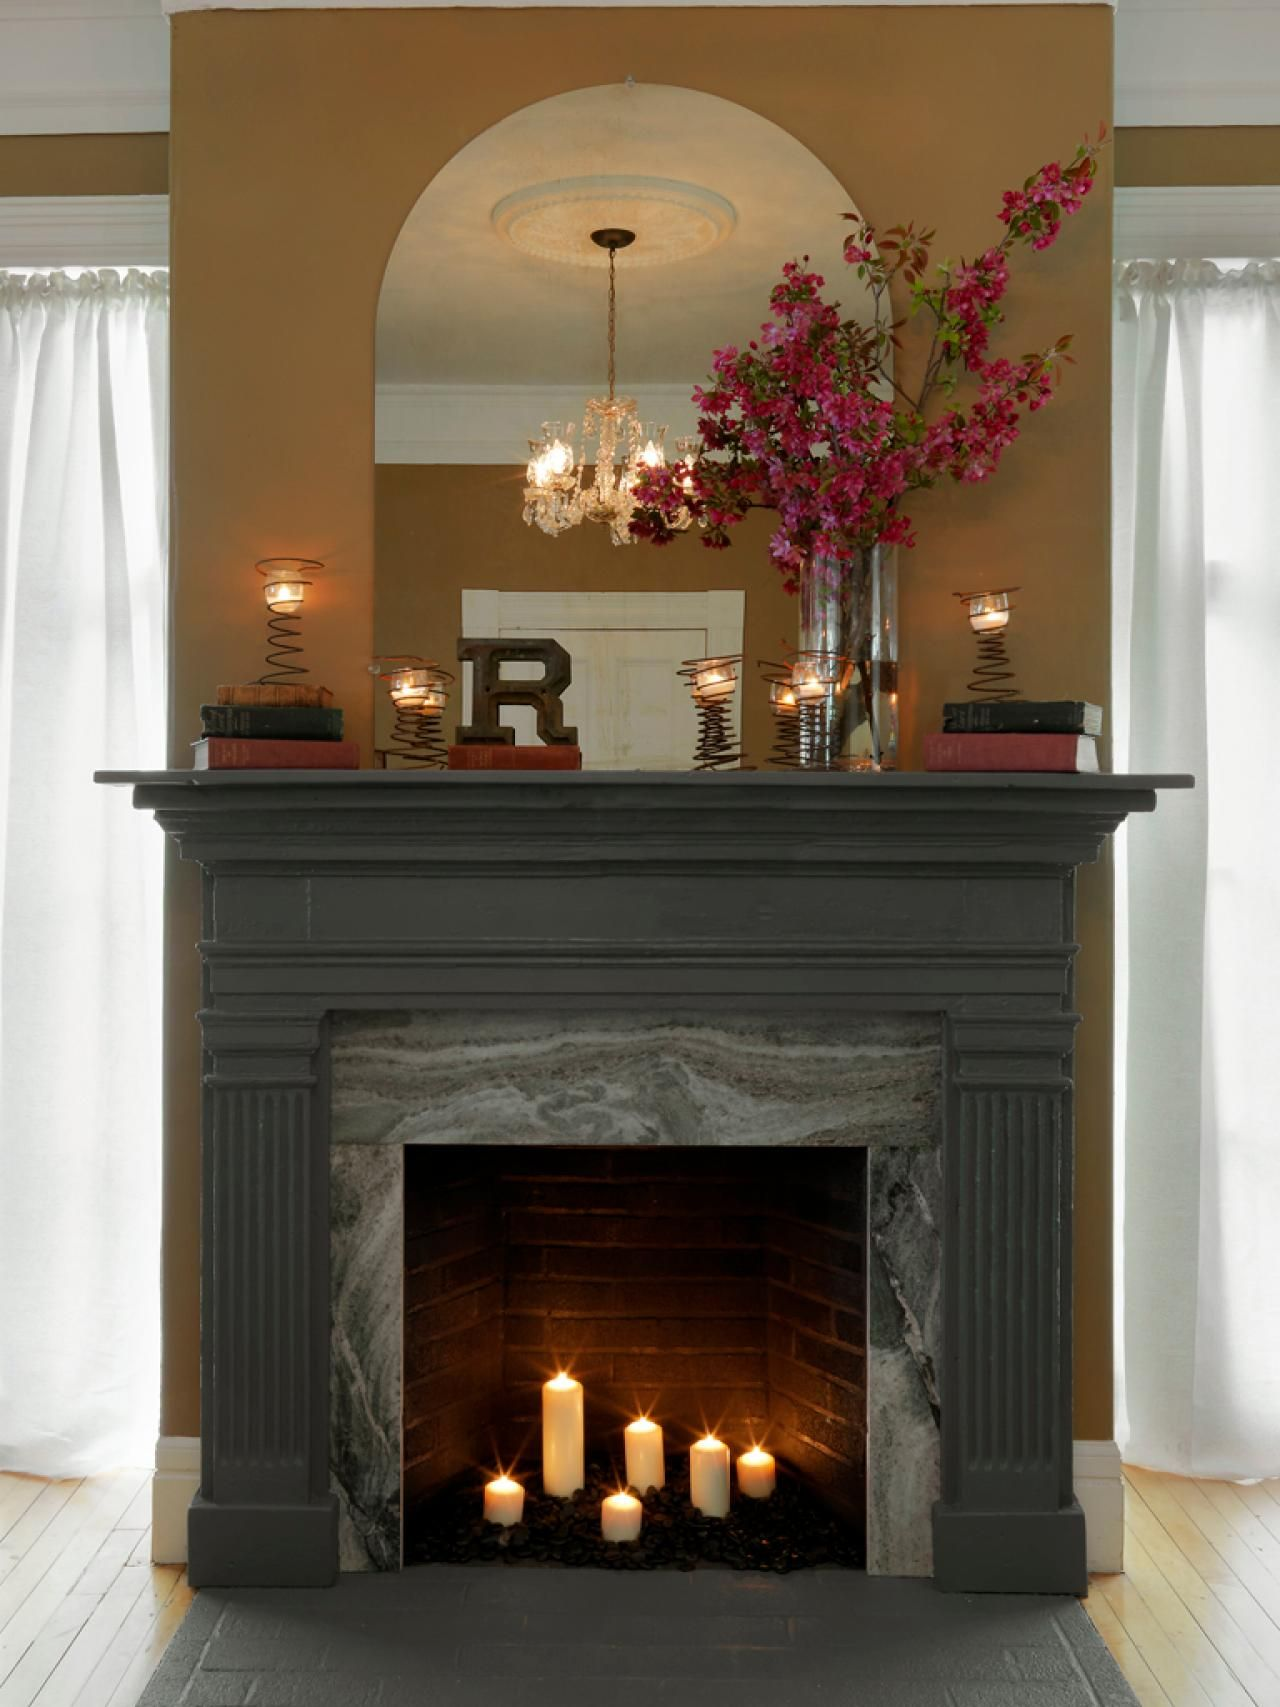 How To Make A Fireplace Mantel Using An Old Door Frame